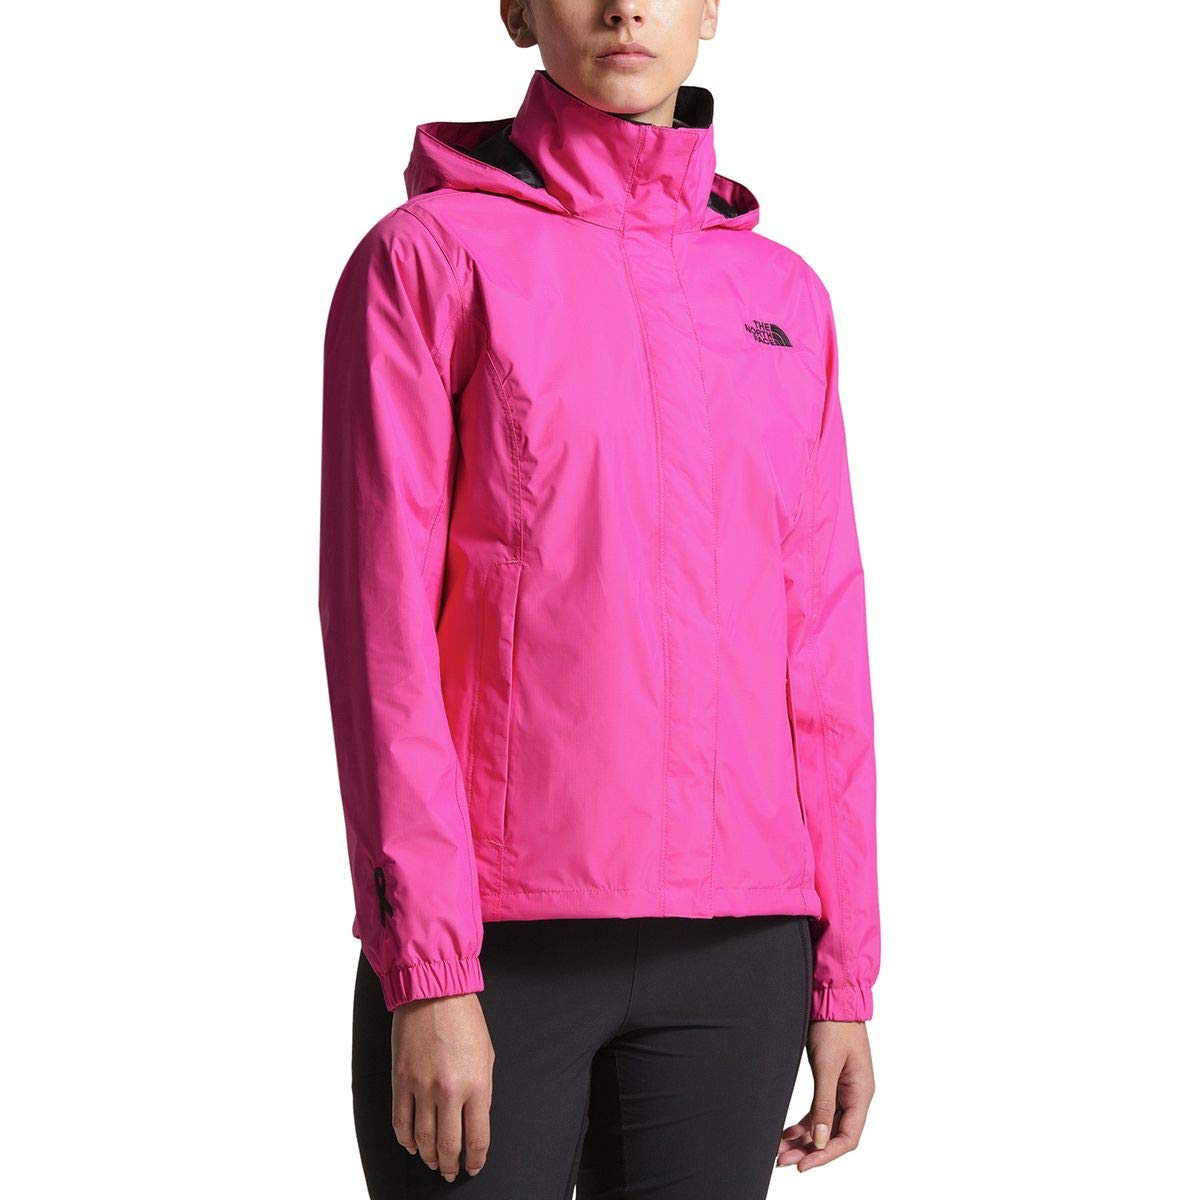 c713f40d1 The North Face Women's Pink Ribbon Resolve Jacket - Raspberry Rose ...